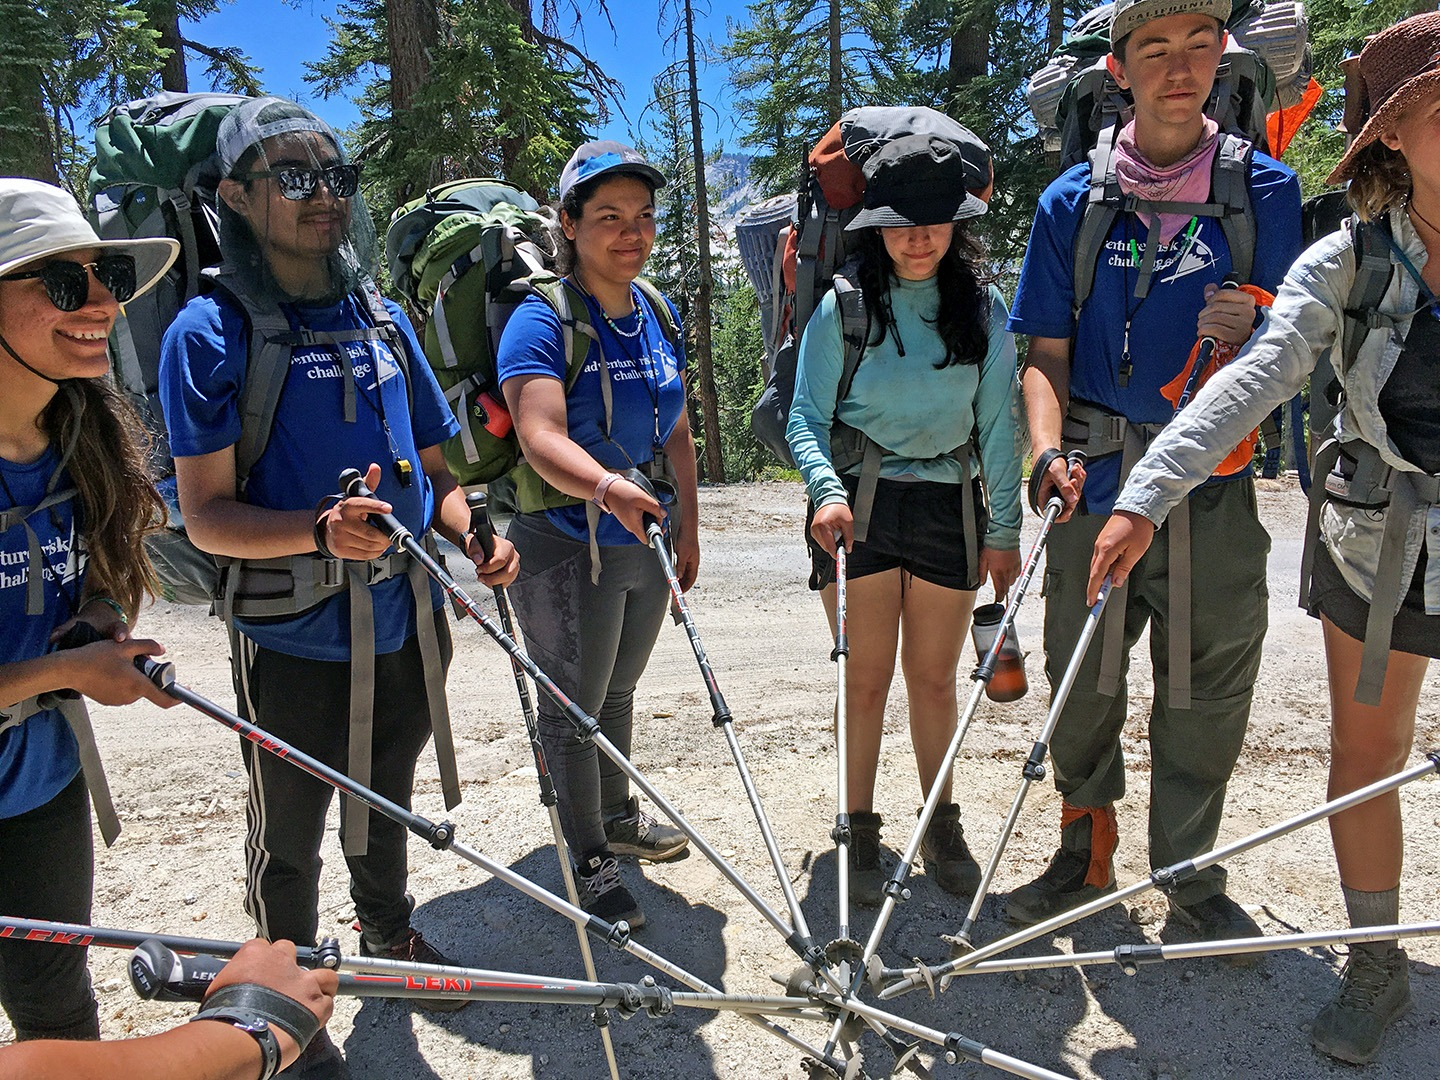 Adventure Risk Challenge students stand in a circle with their hiking poles in the center during a backpacking trip in the Yosemite Wilderness.